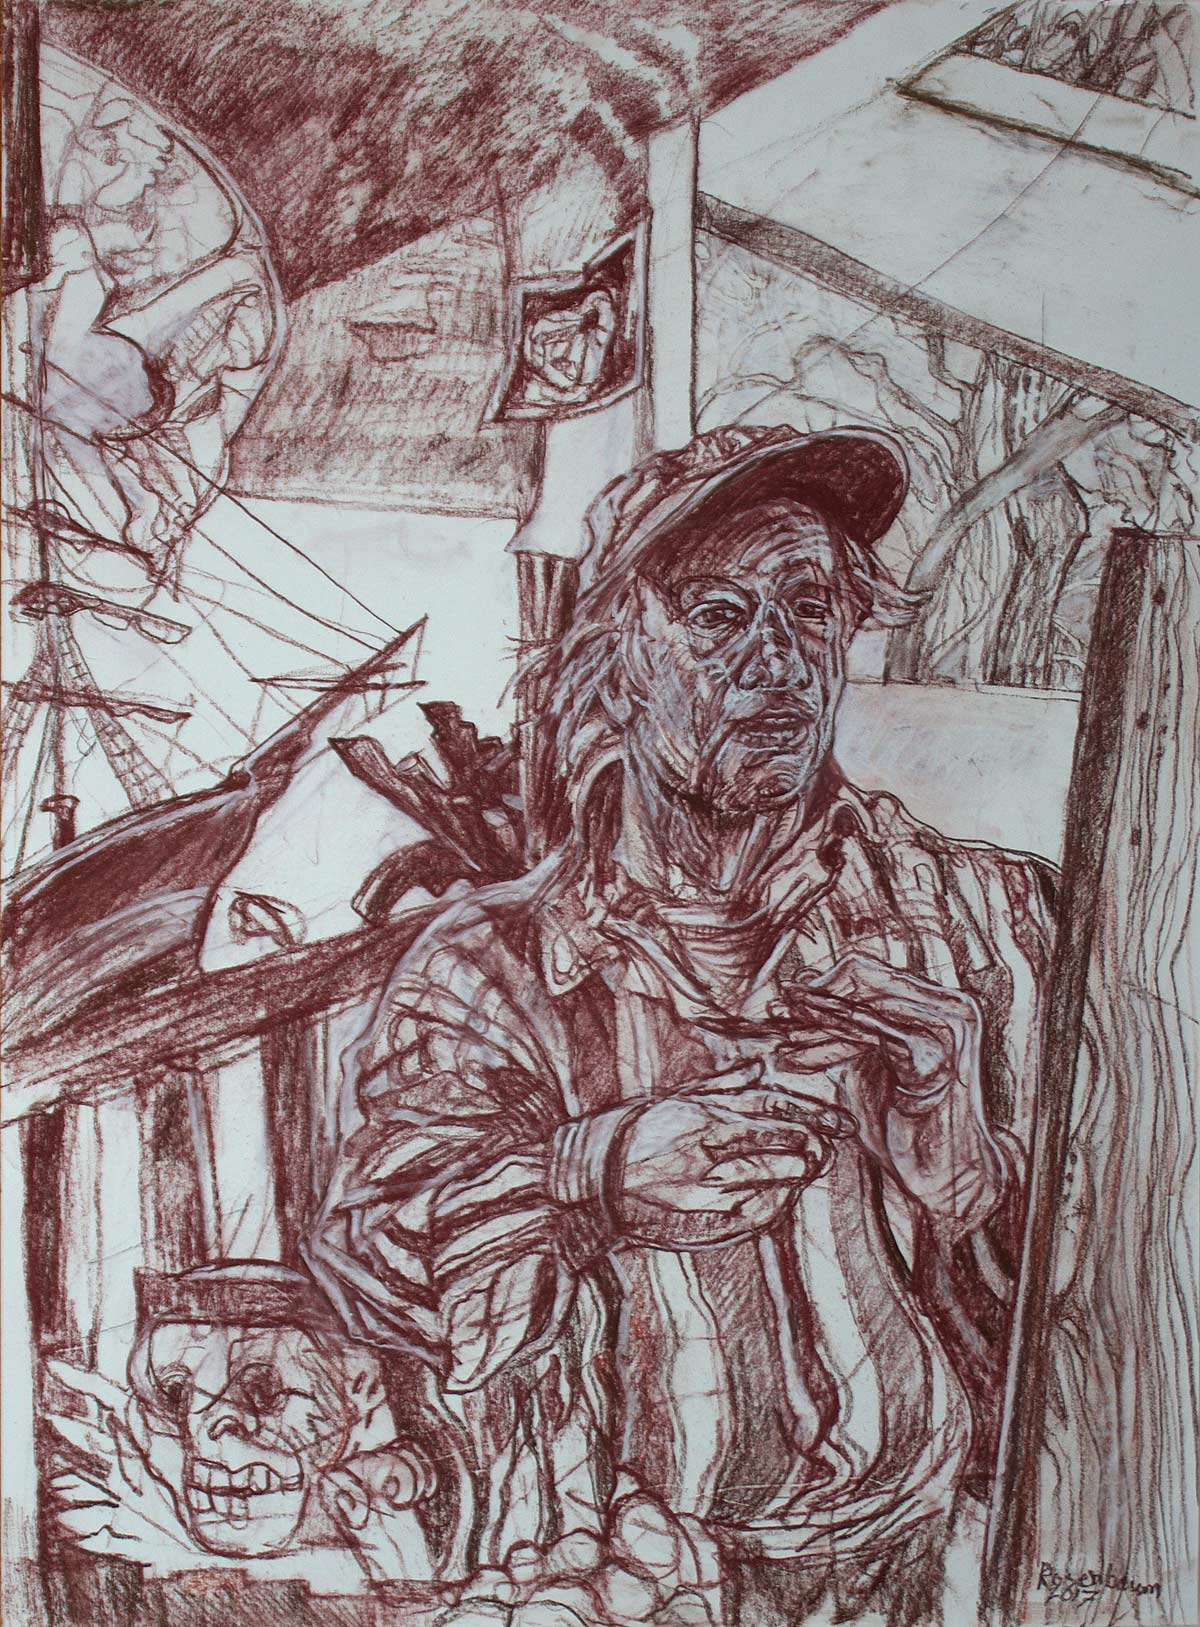 Self-portrait in Studio